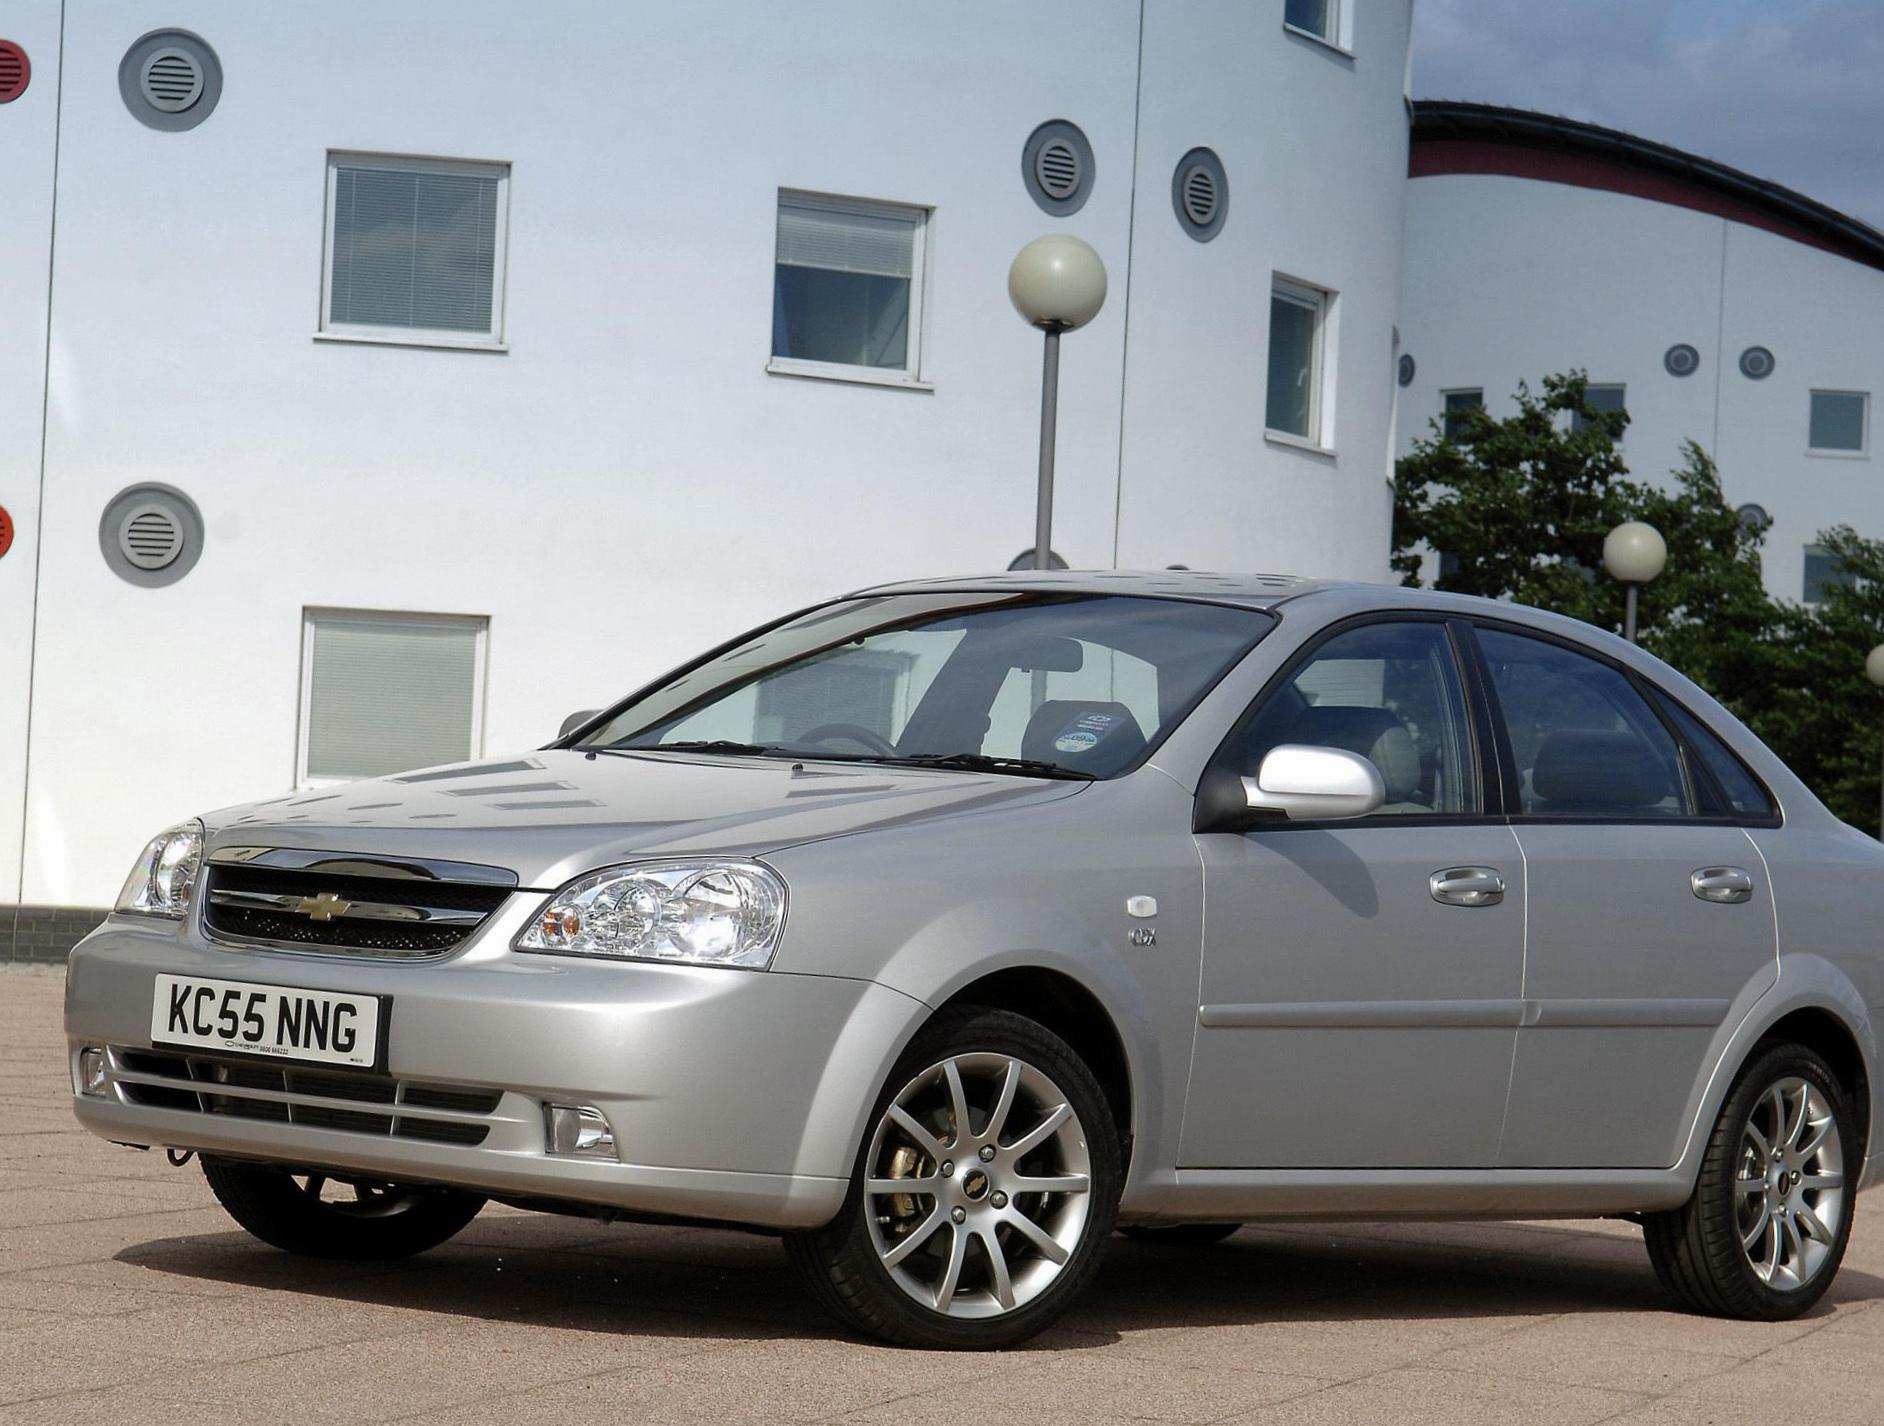 Chevrolet Lacetti models 2013